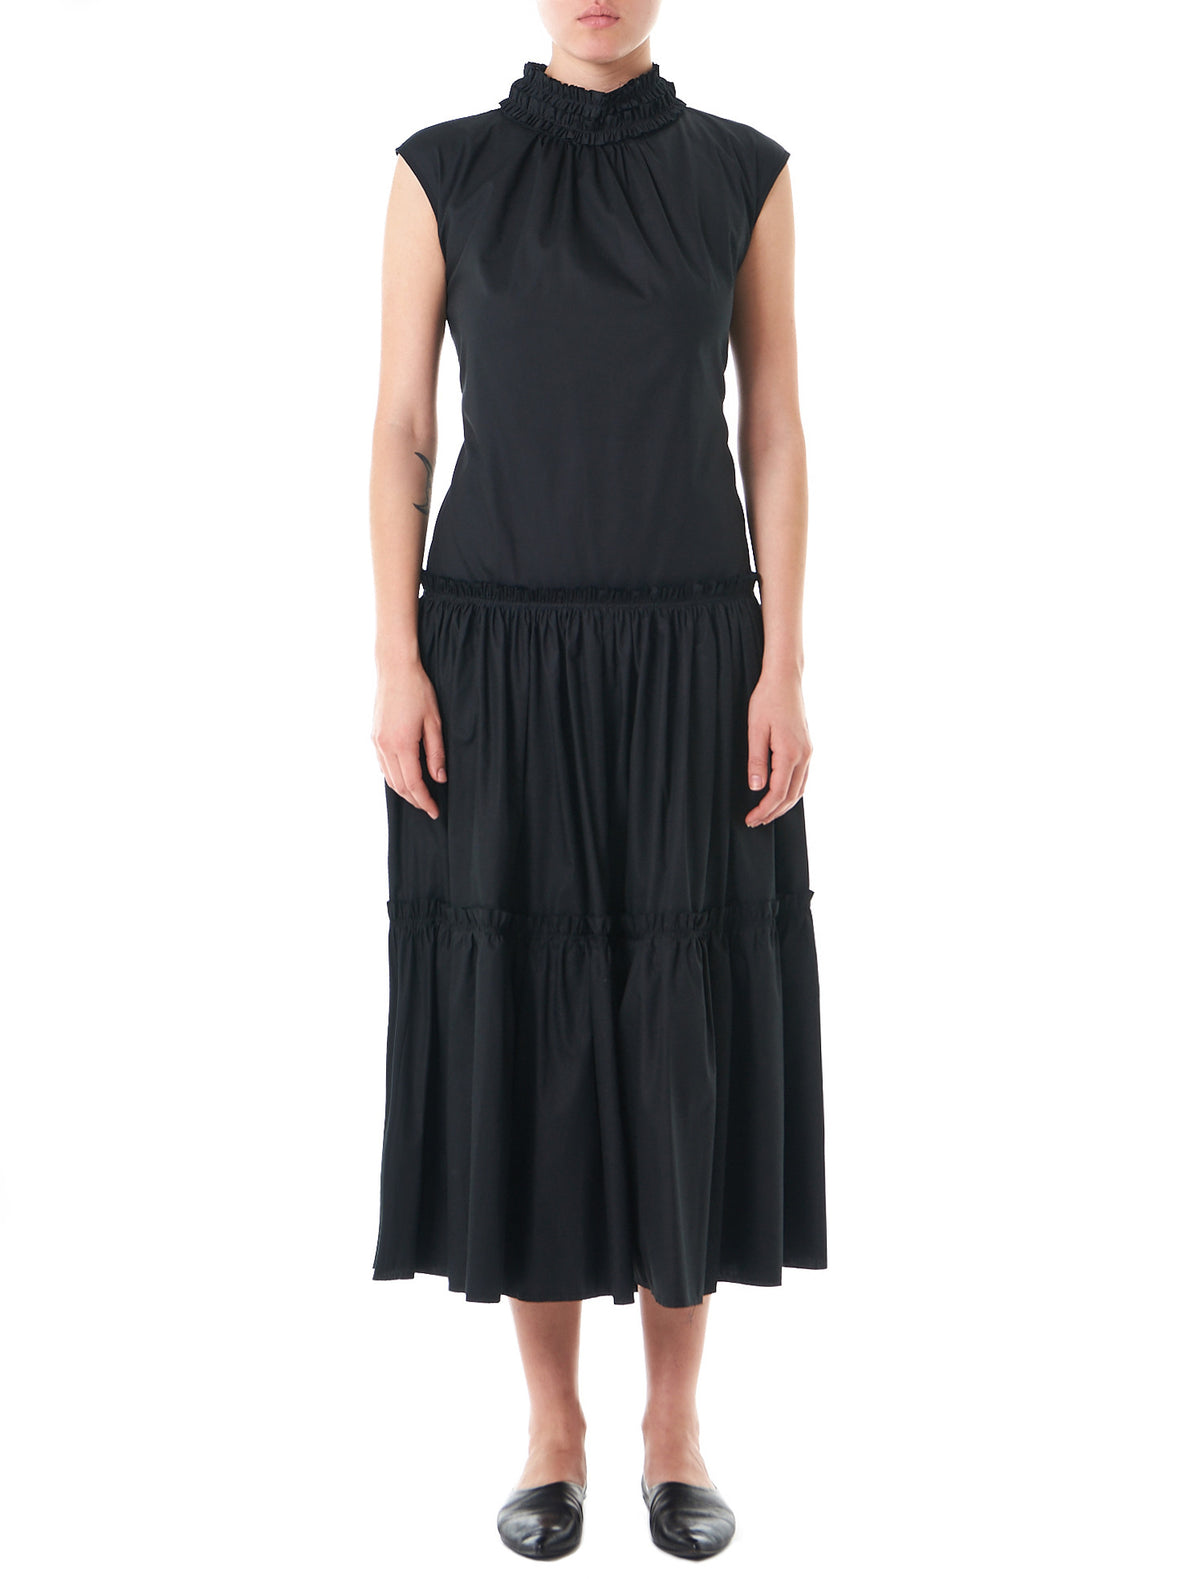 Exposed Back Sleeveless Dress (DR04-BLACK) - H. Lorenzo